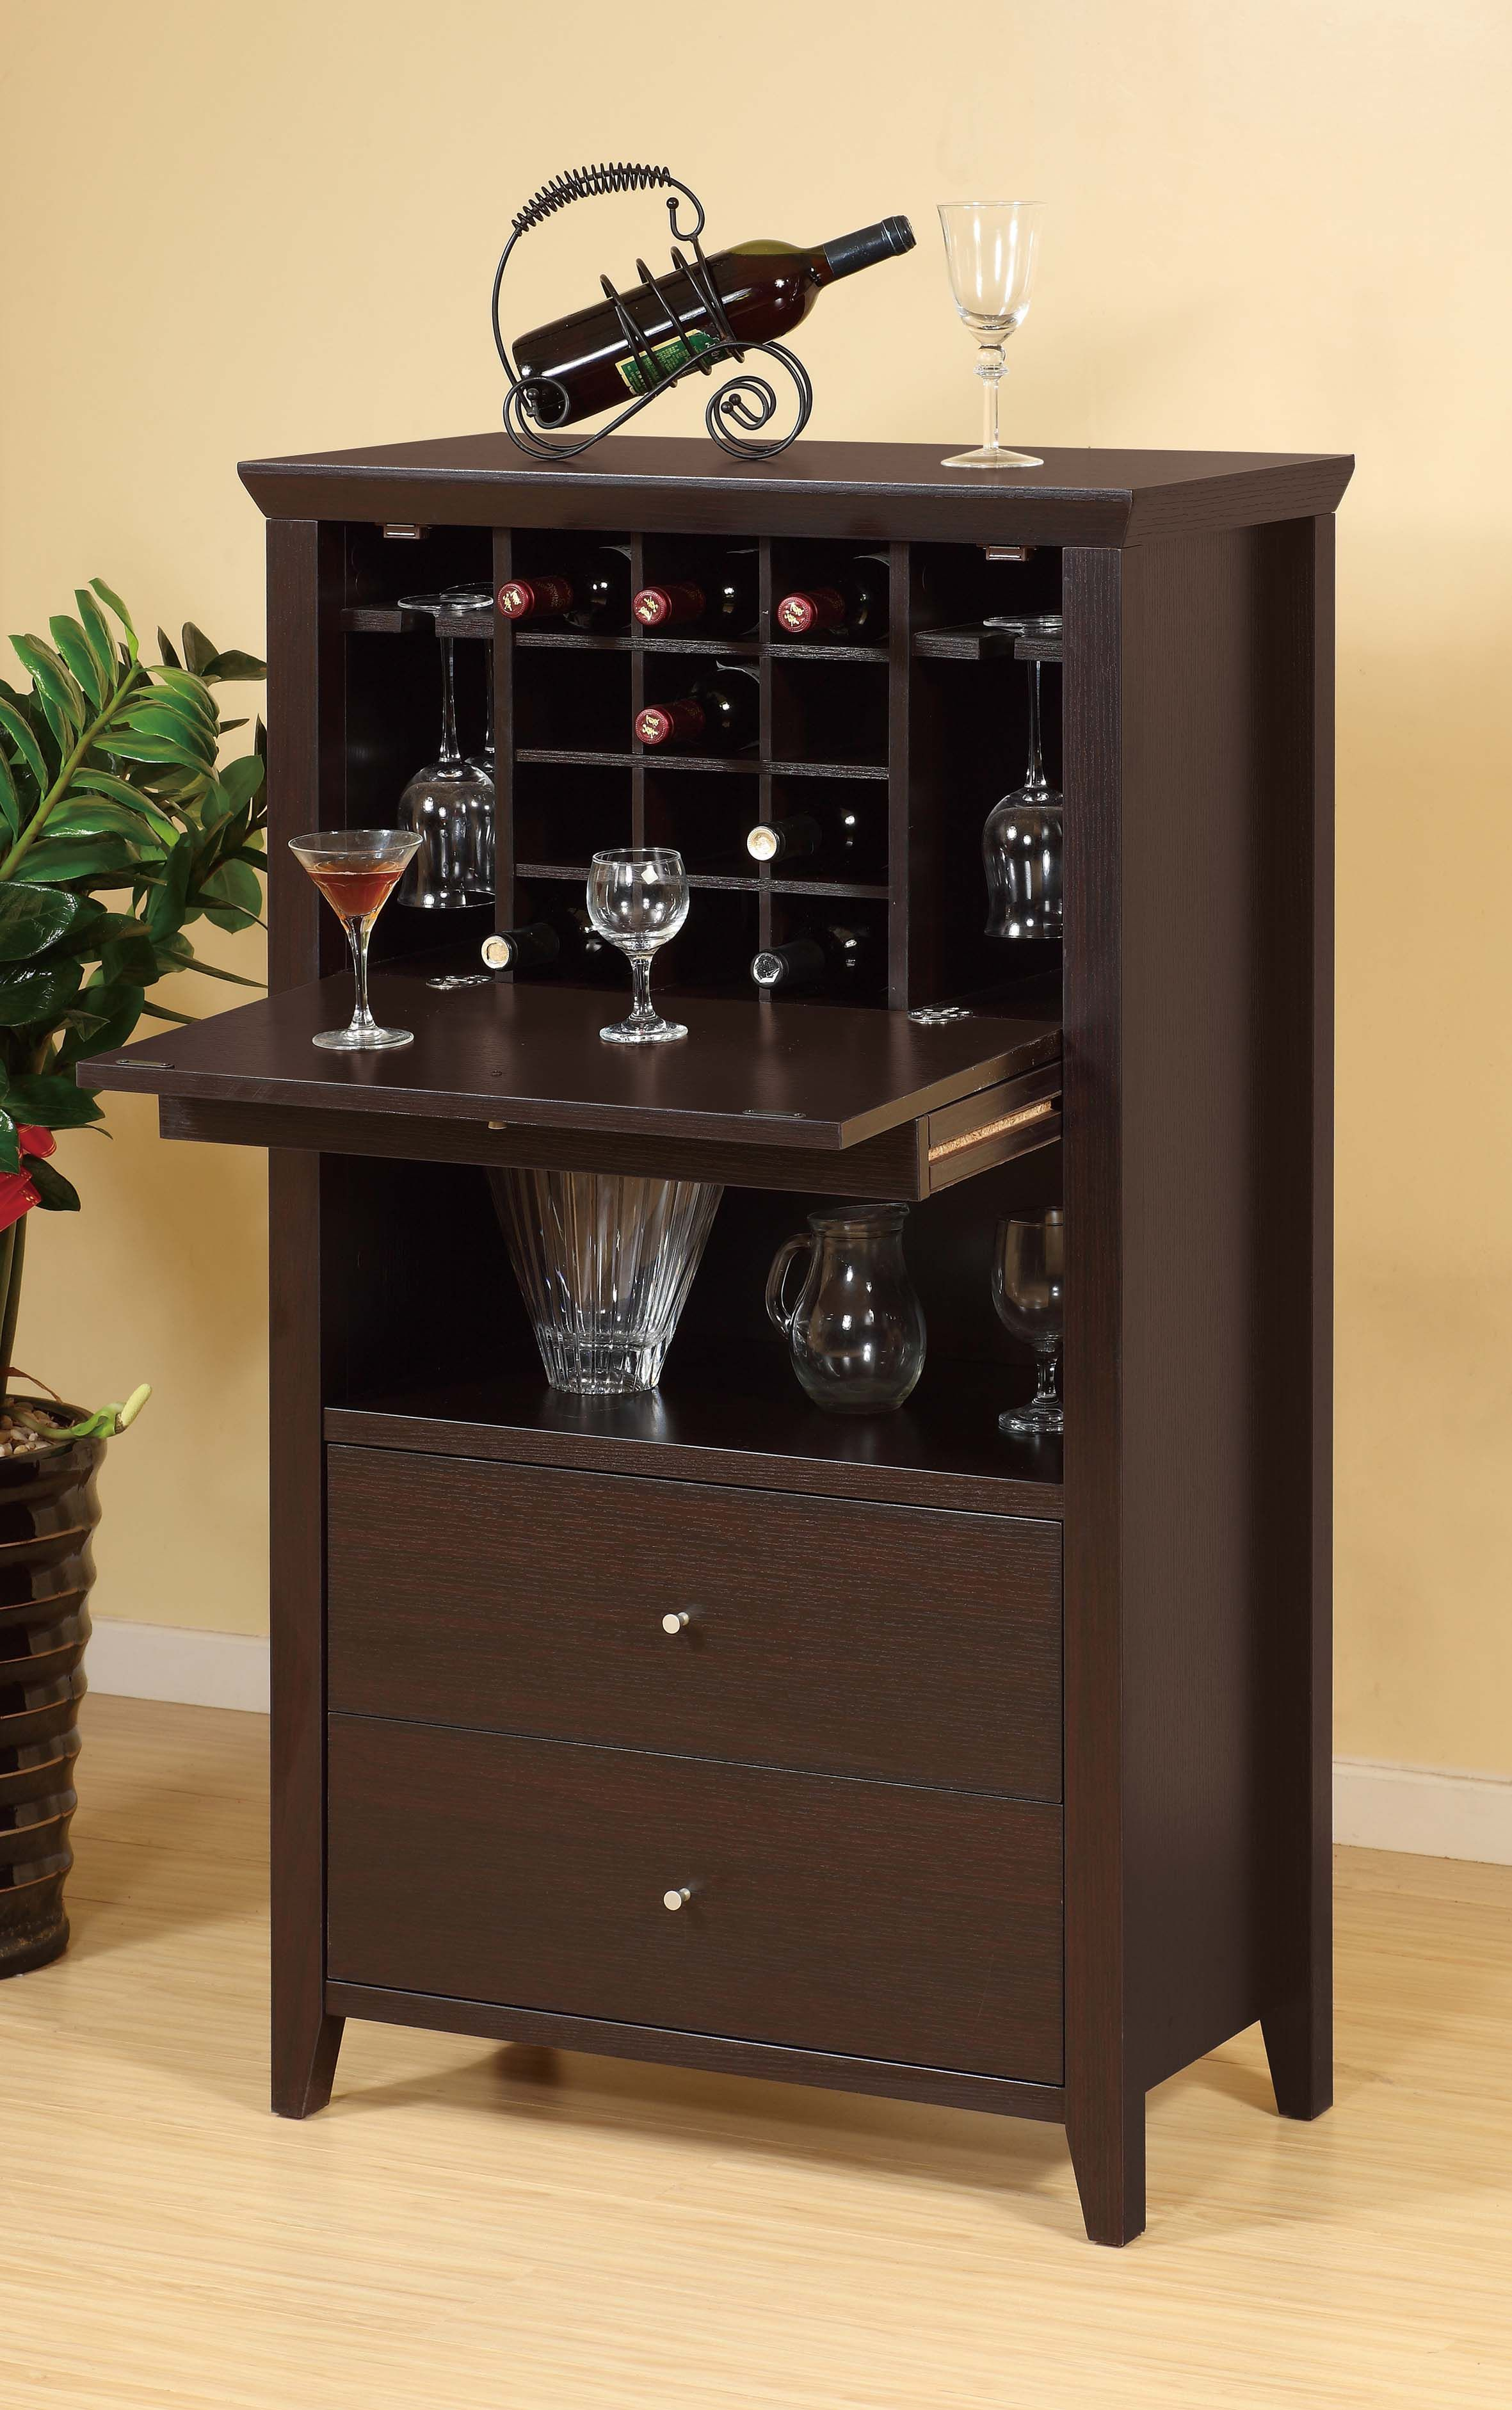 ID USA Furniture Distributor Flip Down Bar Cabinet features a